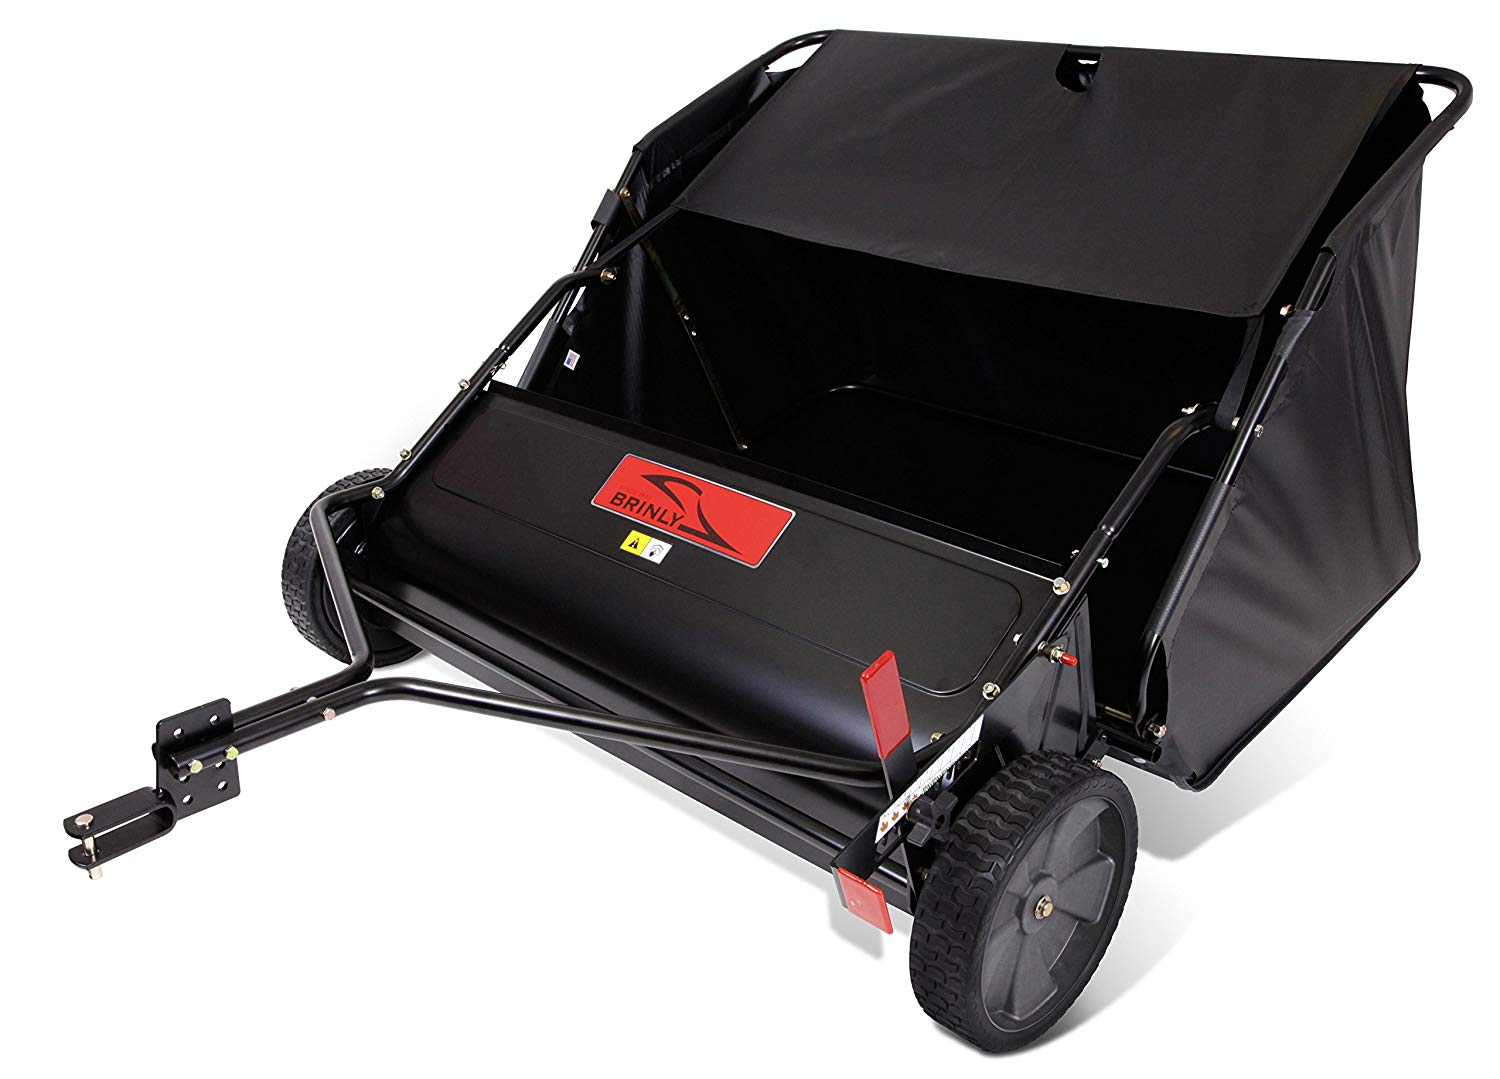 Brinly 20 Cubic Feet Tow-Behind Lawn Sweeper, STS-427LXH